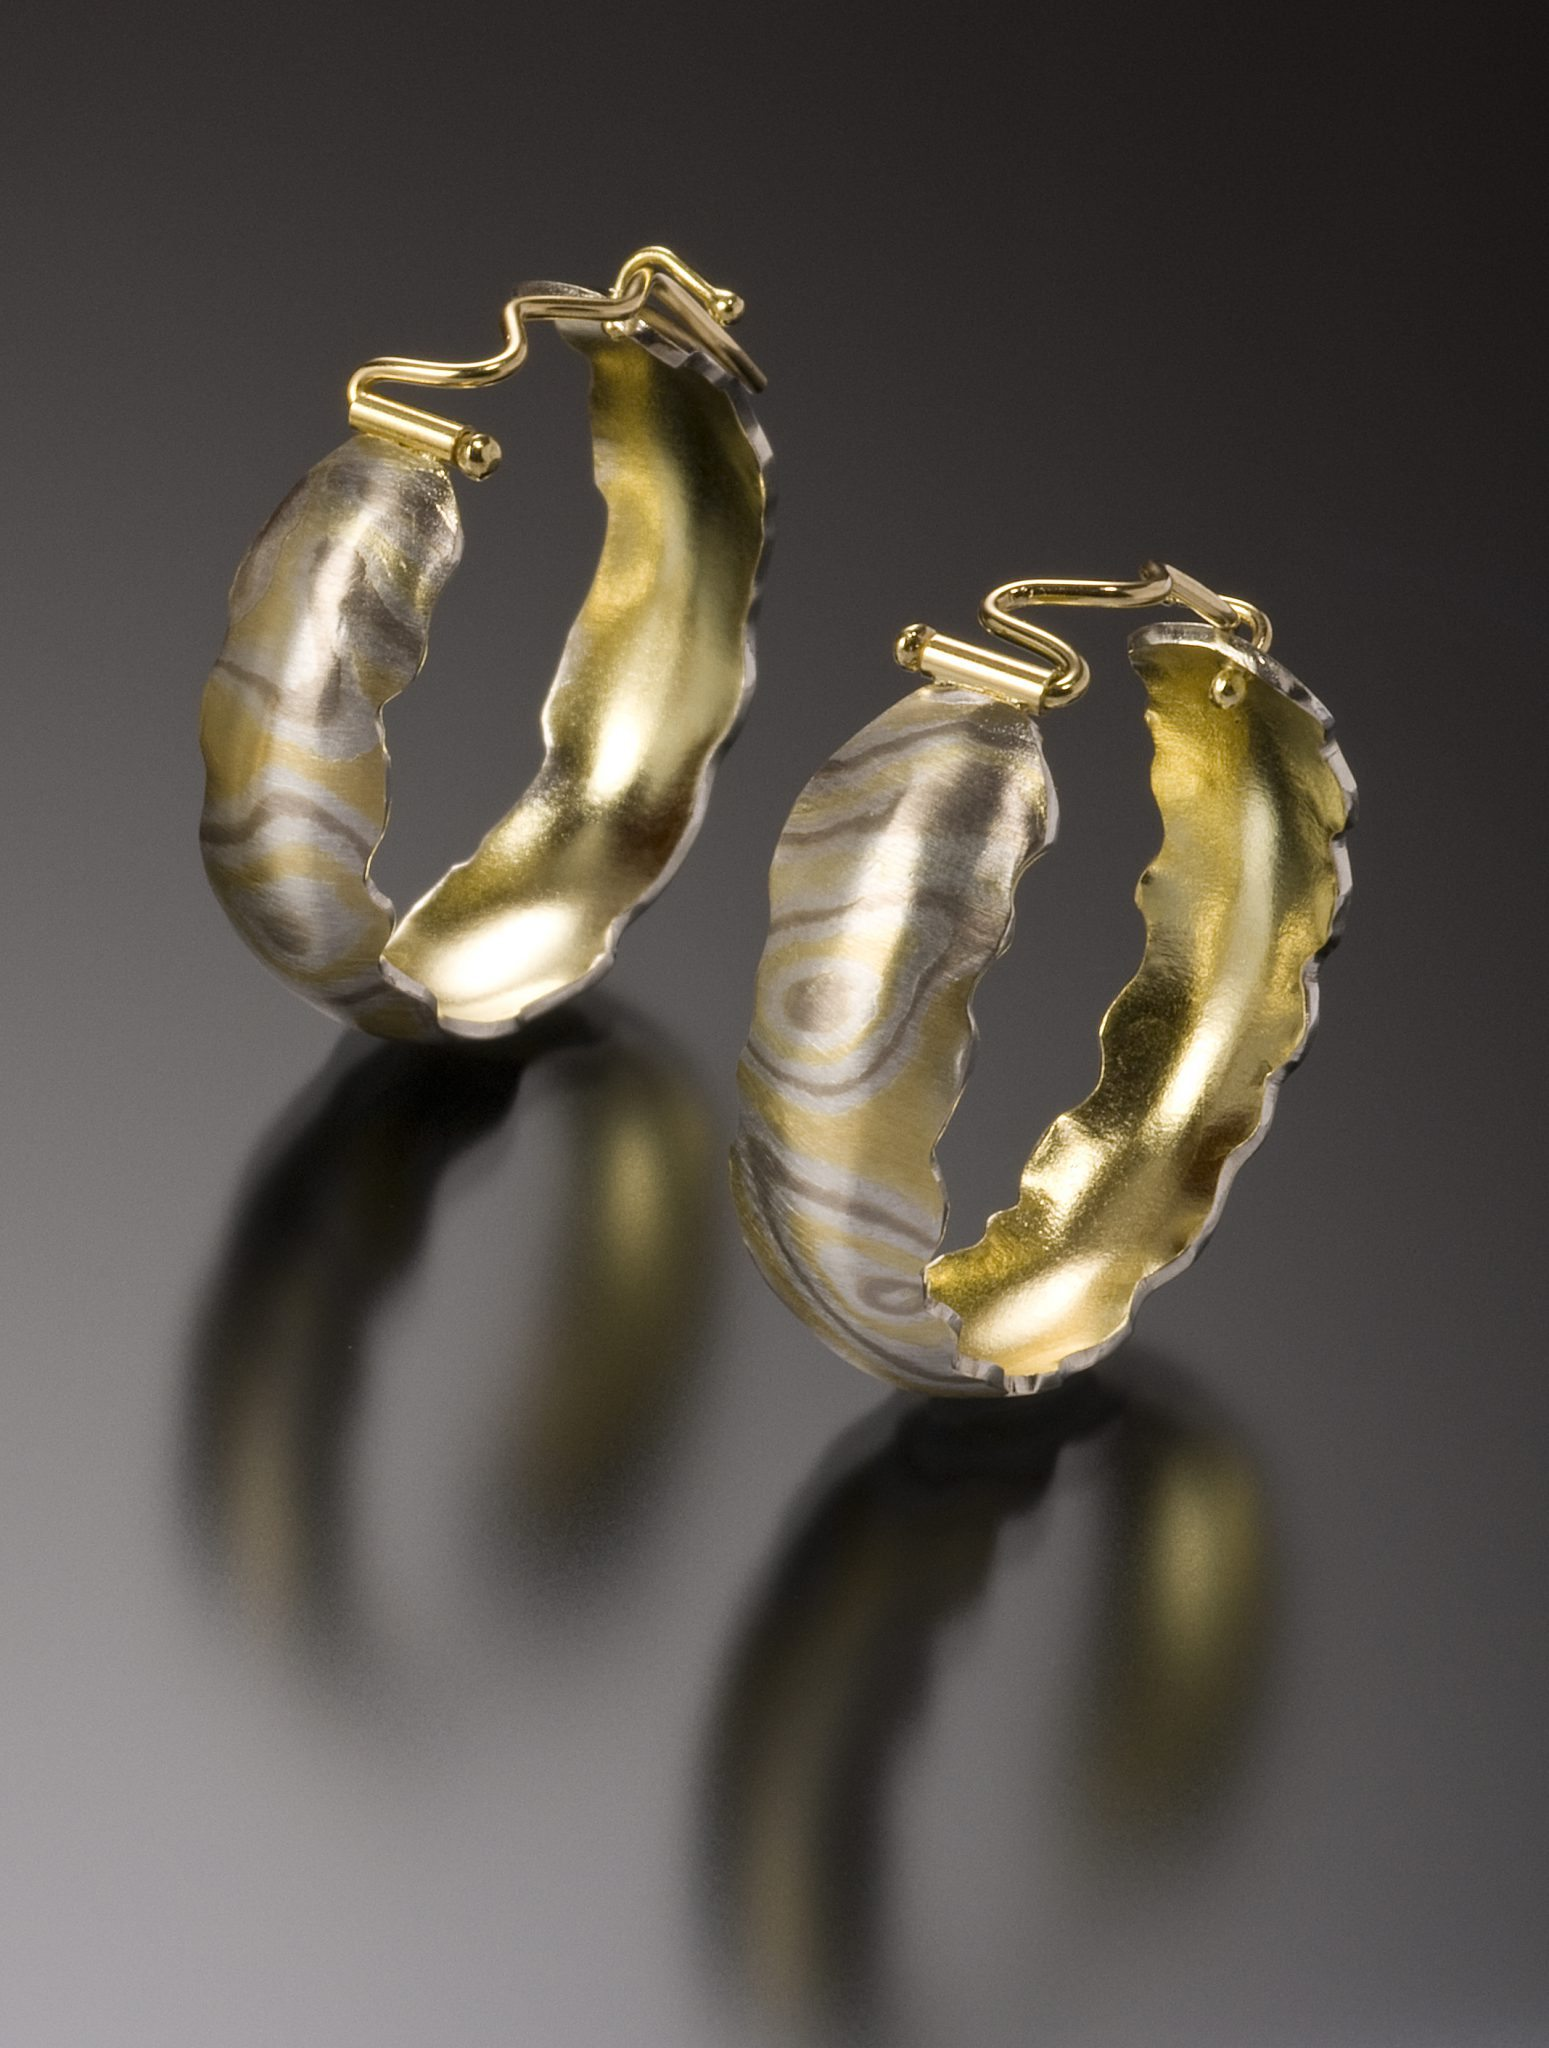 lisa jane grant mokume mixed meta Aspen jewelry gold 14k 18k Palladium White gold Yellow gold contemporary etched rough edge organic Maine handmade unique Jewellery Earrings Hoops Cali Columbia